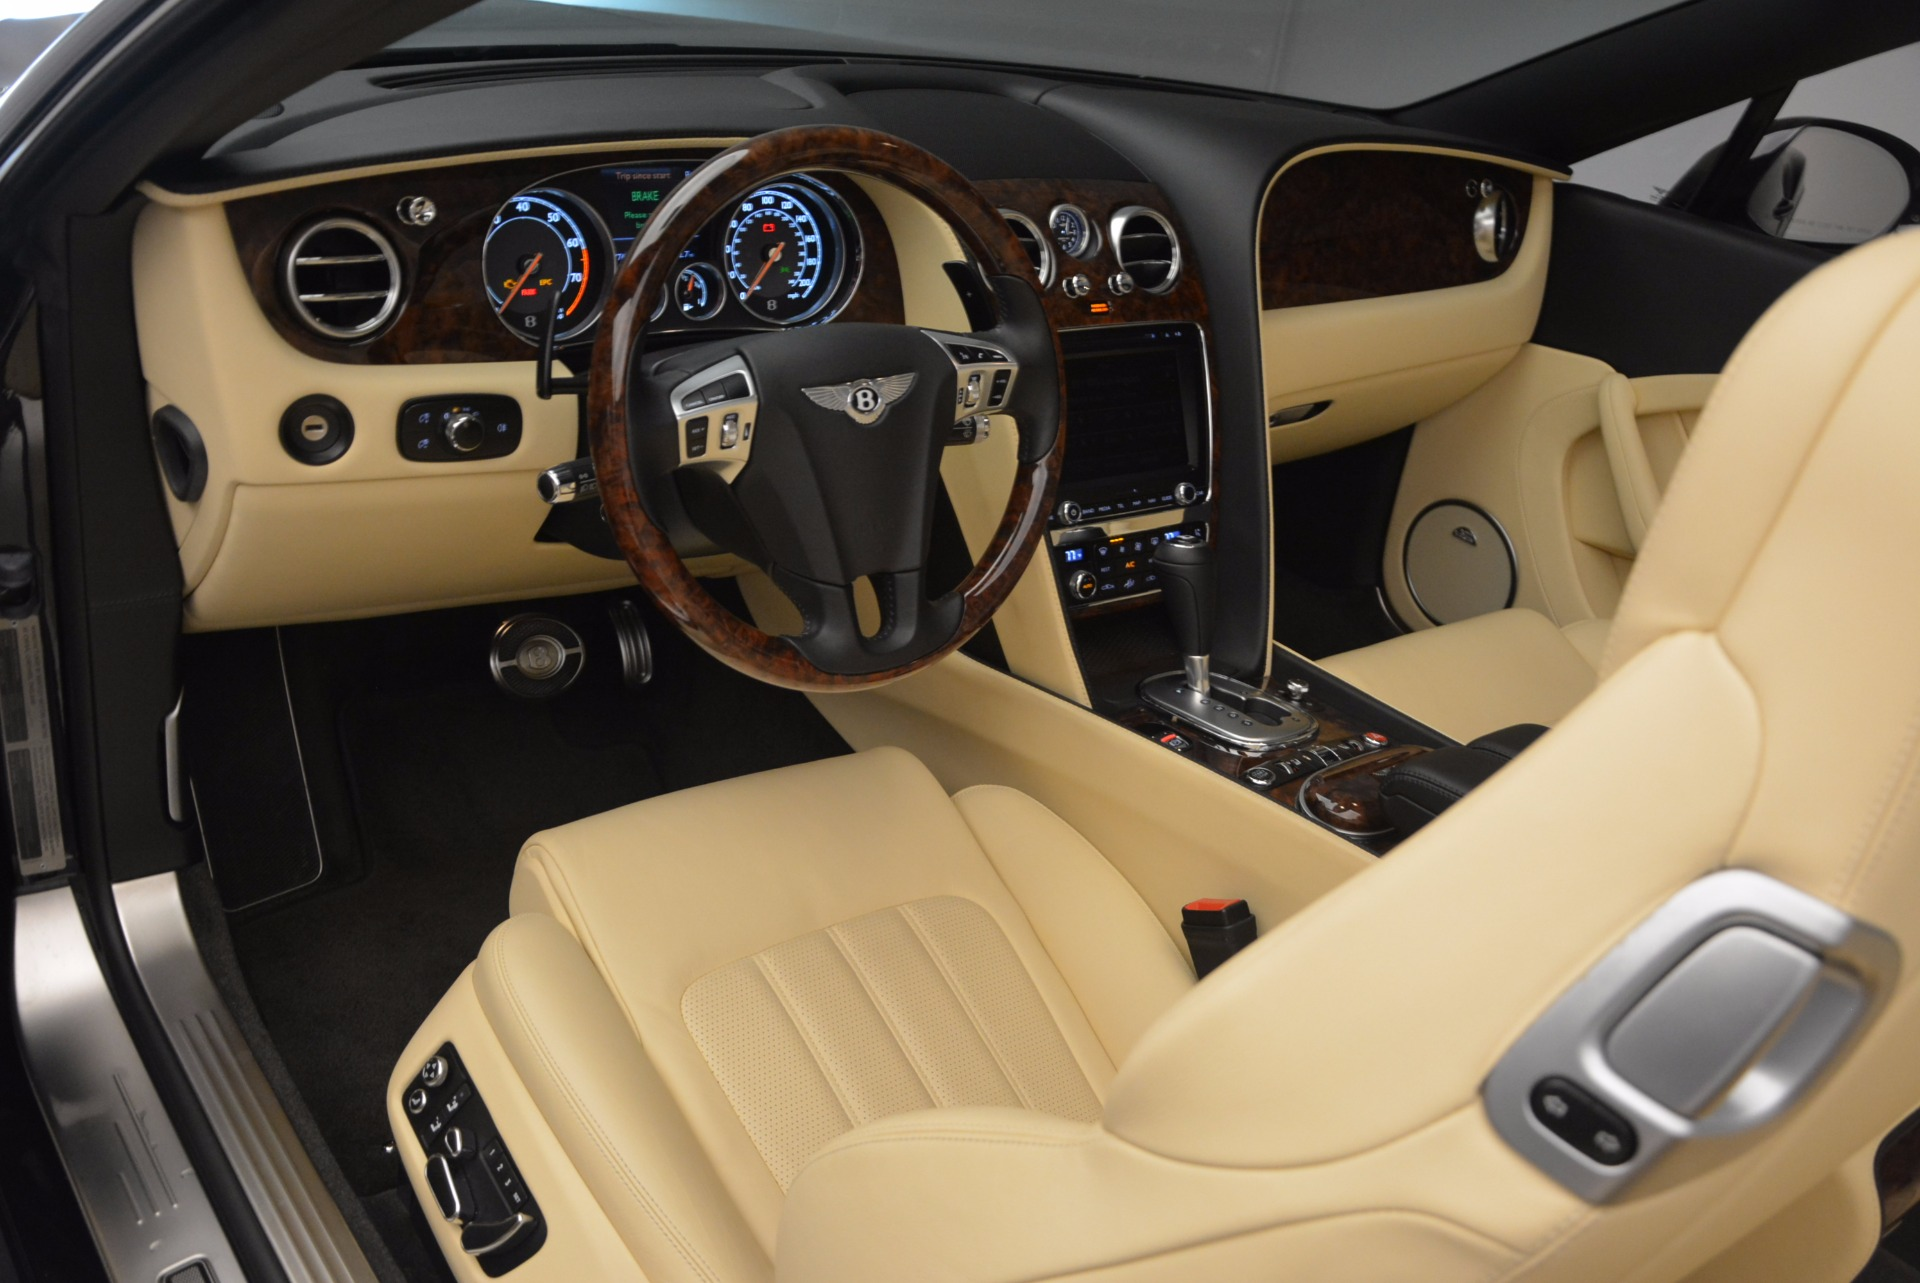 Used 2012 Bentley Continental GT W12 For Sale In Westport, CT 1656_p31